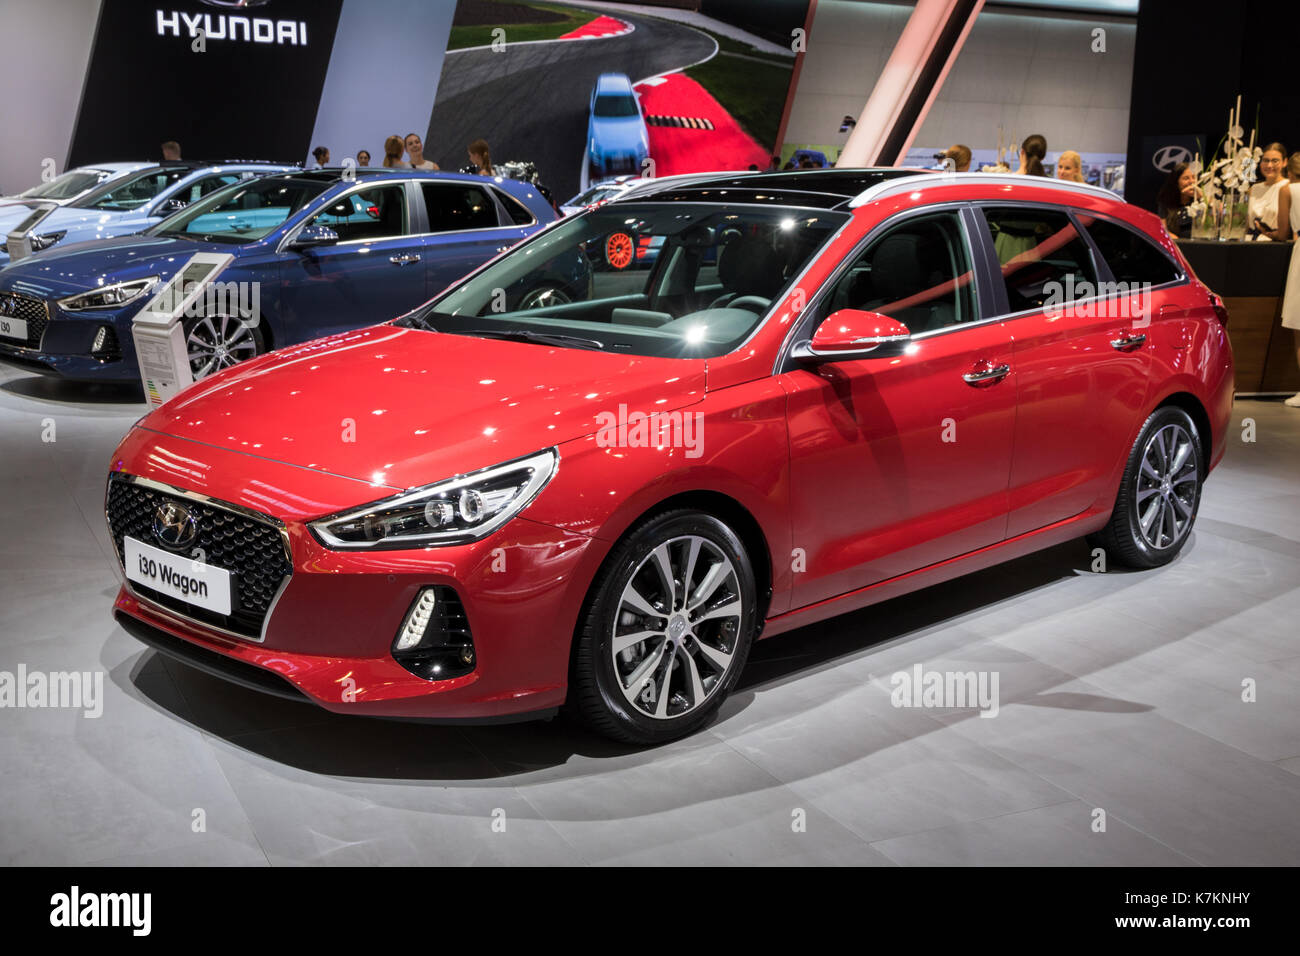 frankfurt germany sep 12 2017 new 2018 hyundai i30 wagon car at stock photo 159629959 alamy. Black Bedroom Furniture Sets. Home Design Ideas